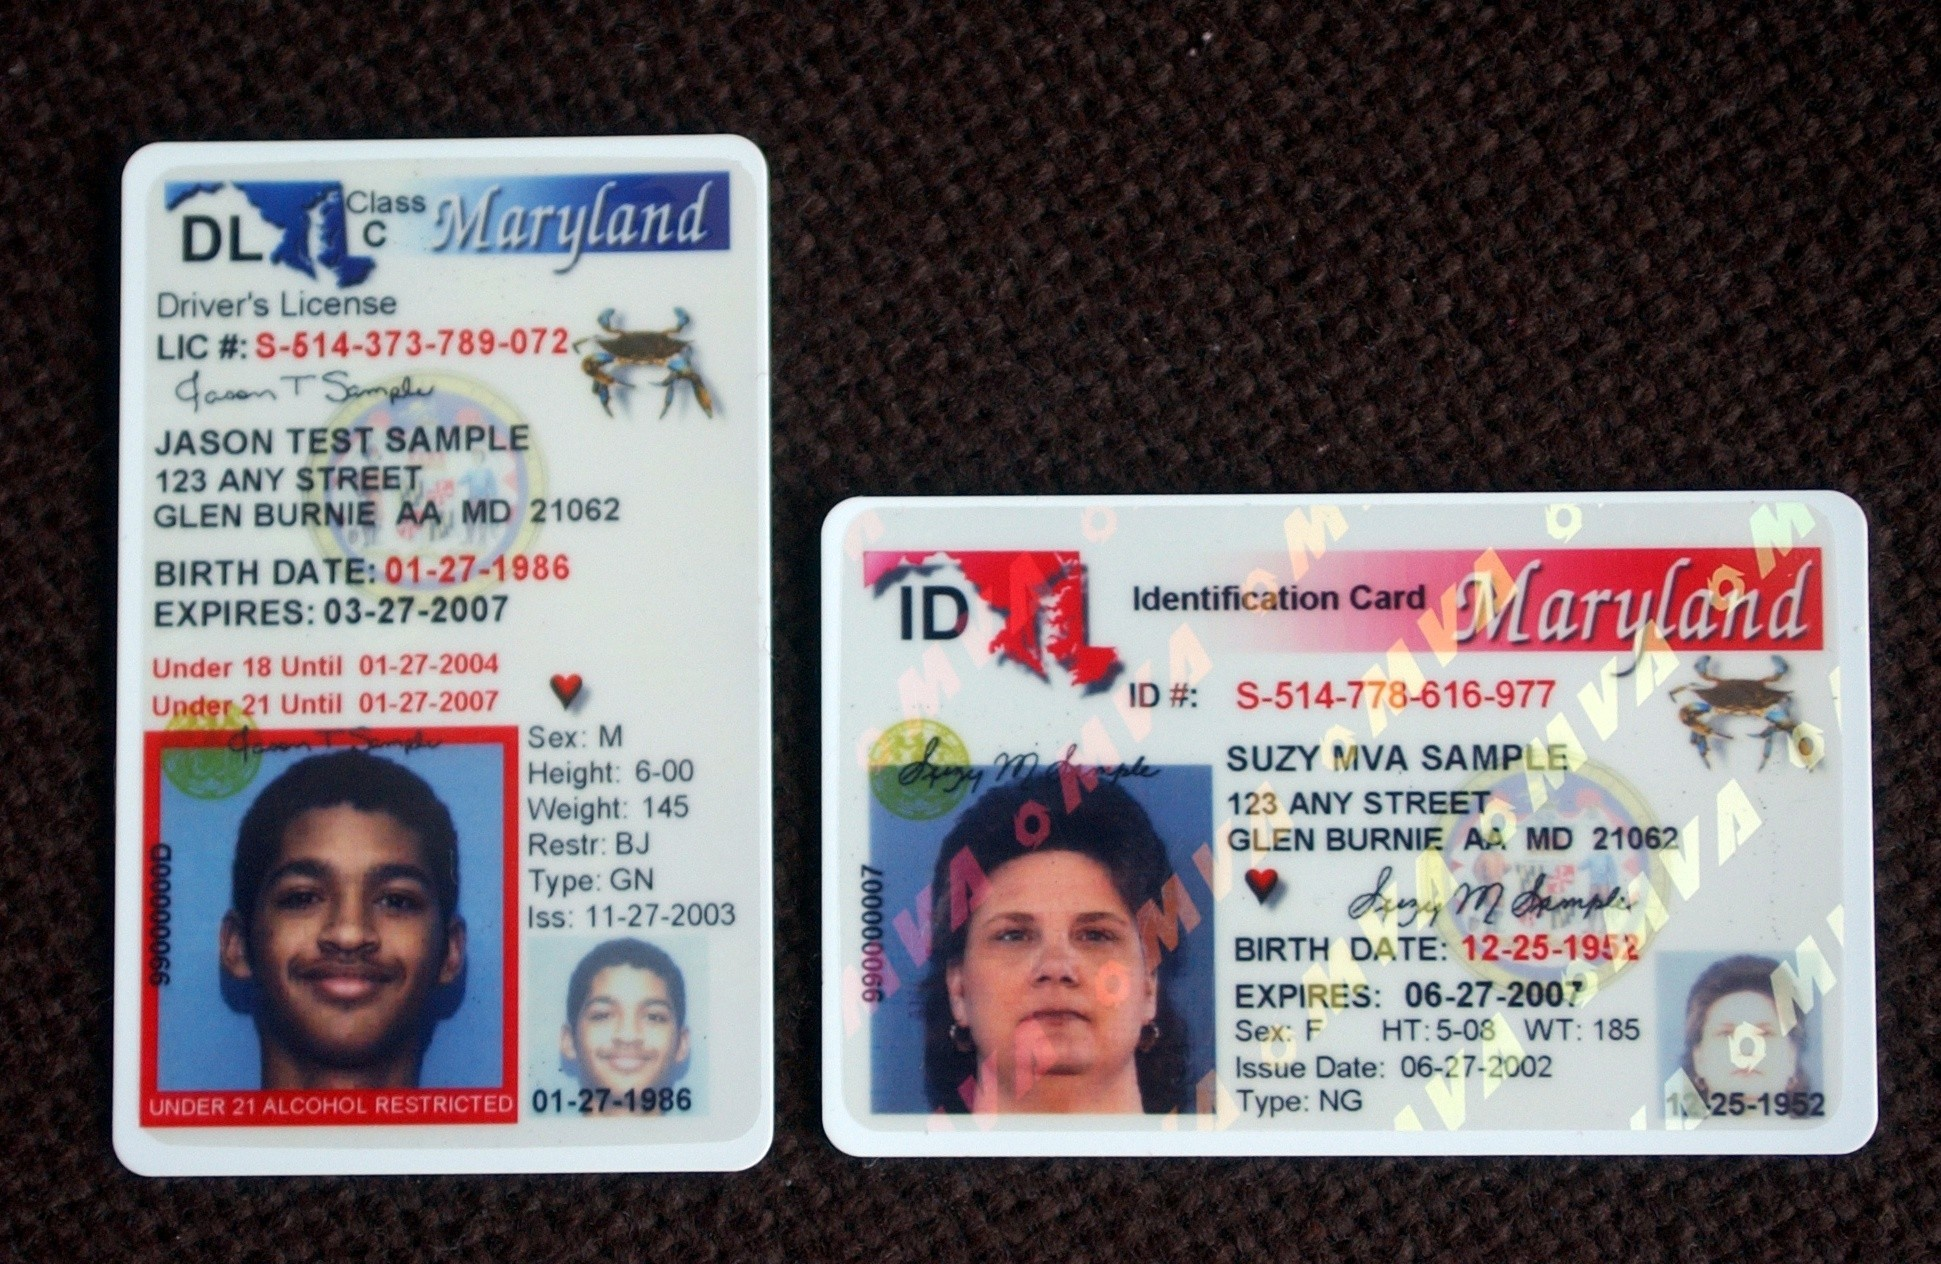 Capital Gazette License Driver's New Maryland -